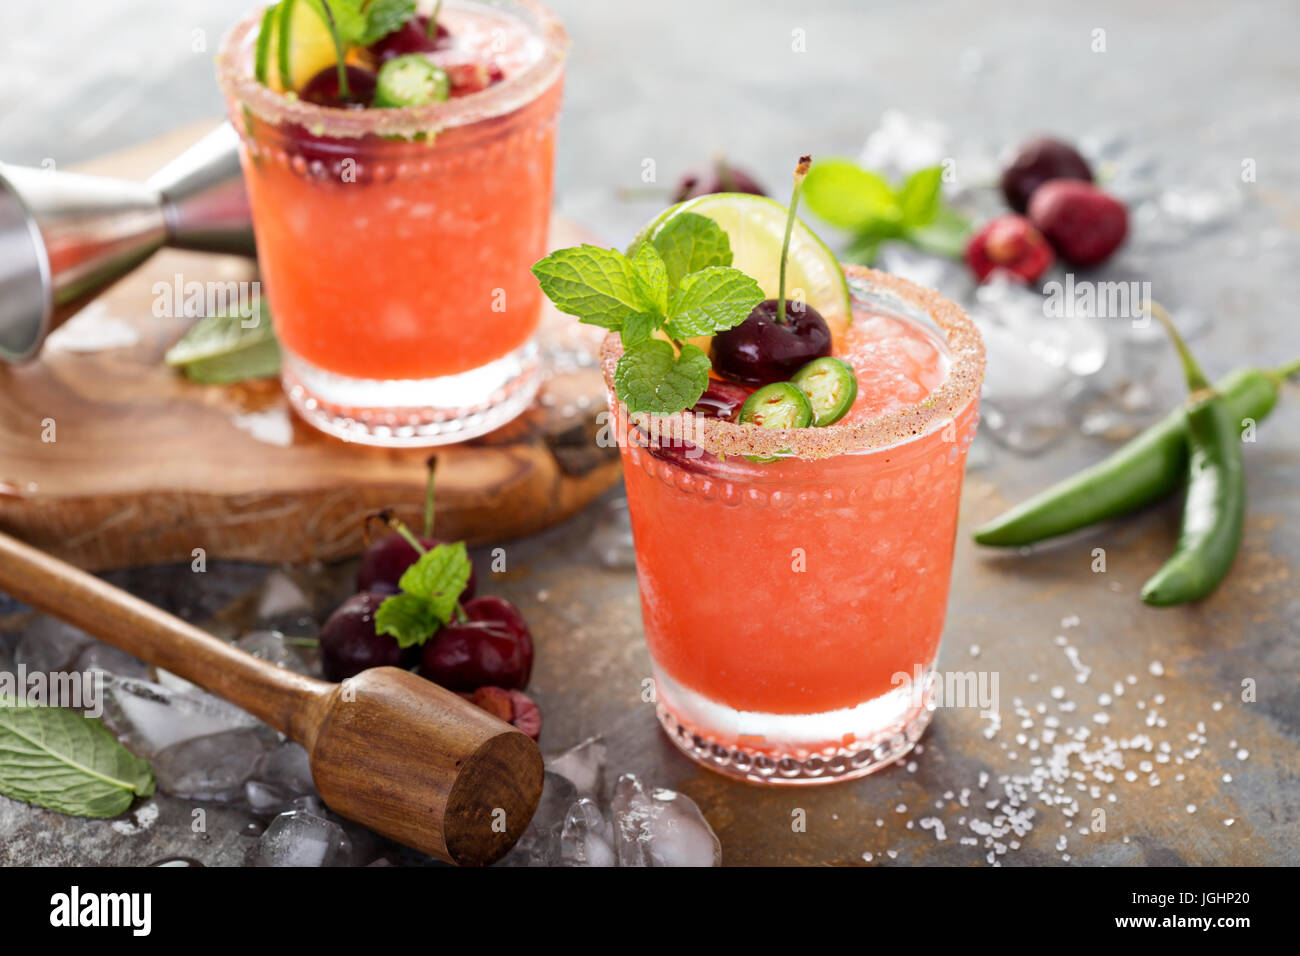 Refreshing summer cocktail with cherry - Stock Image